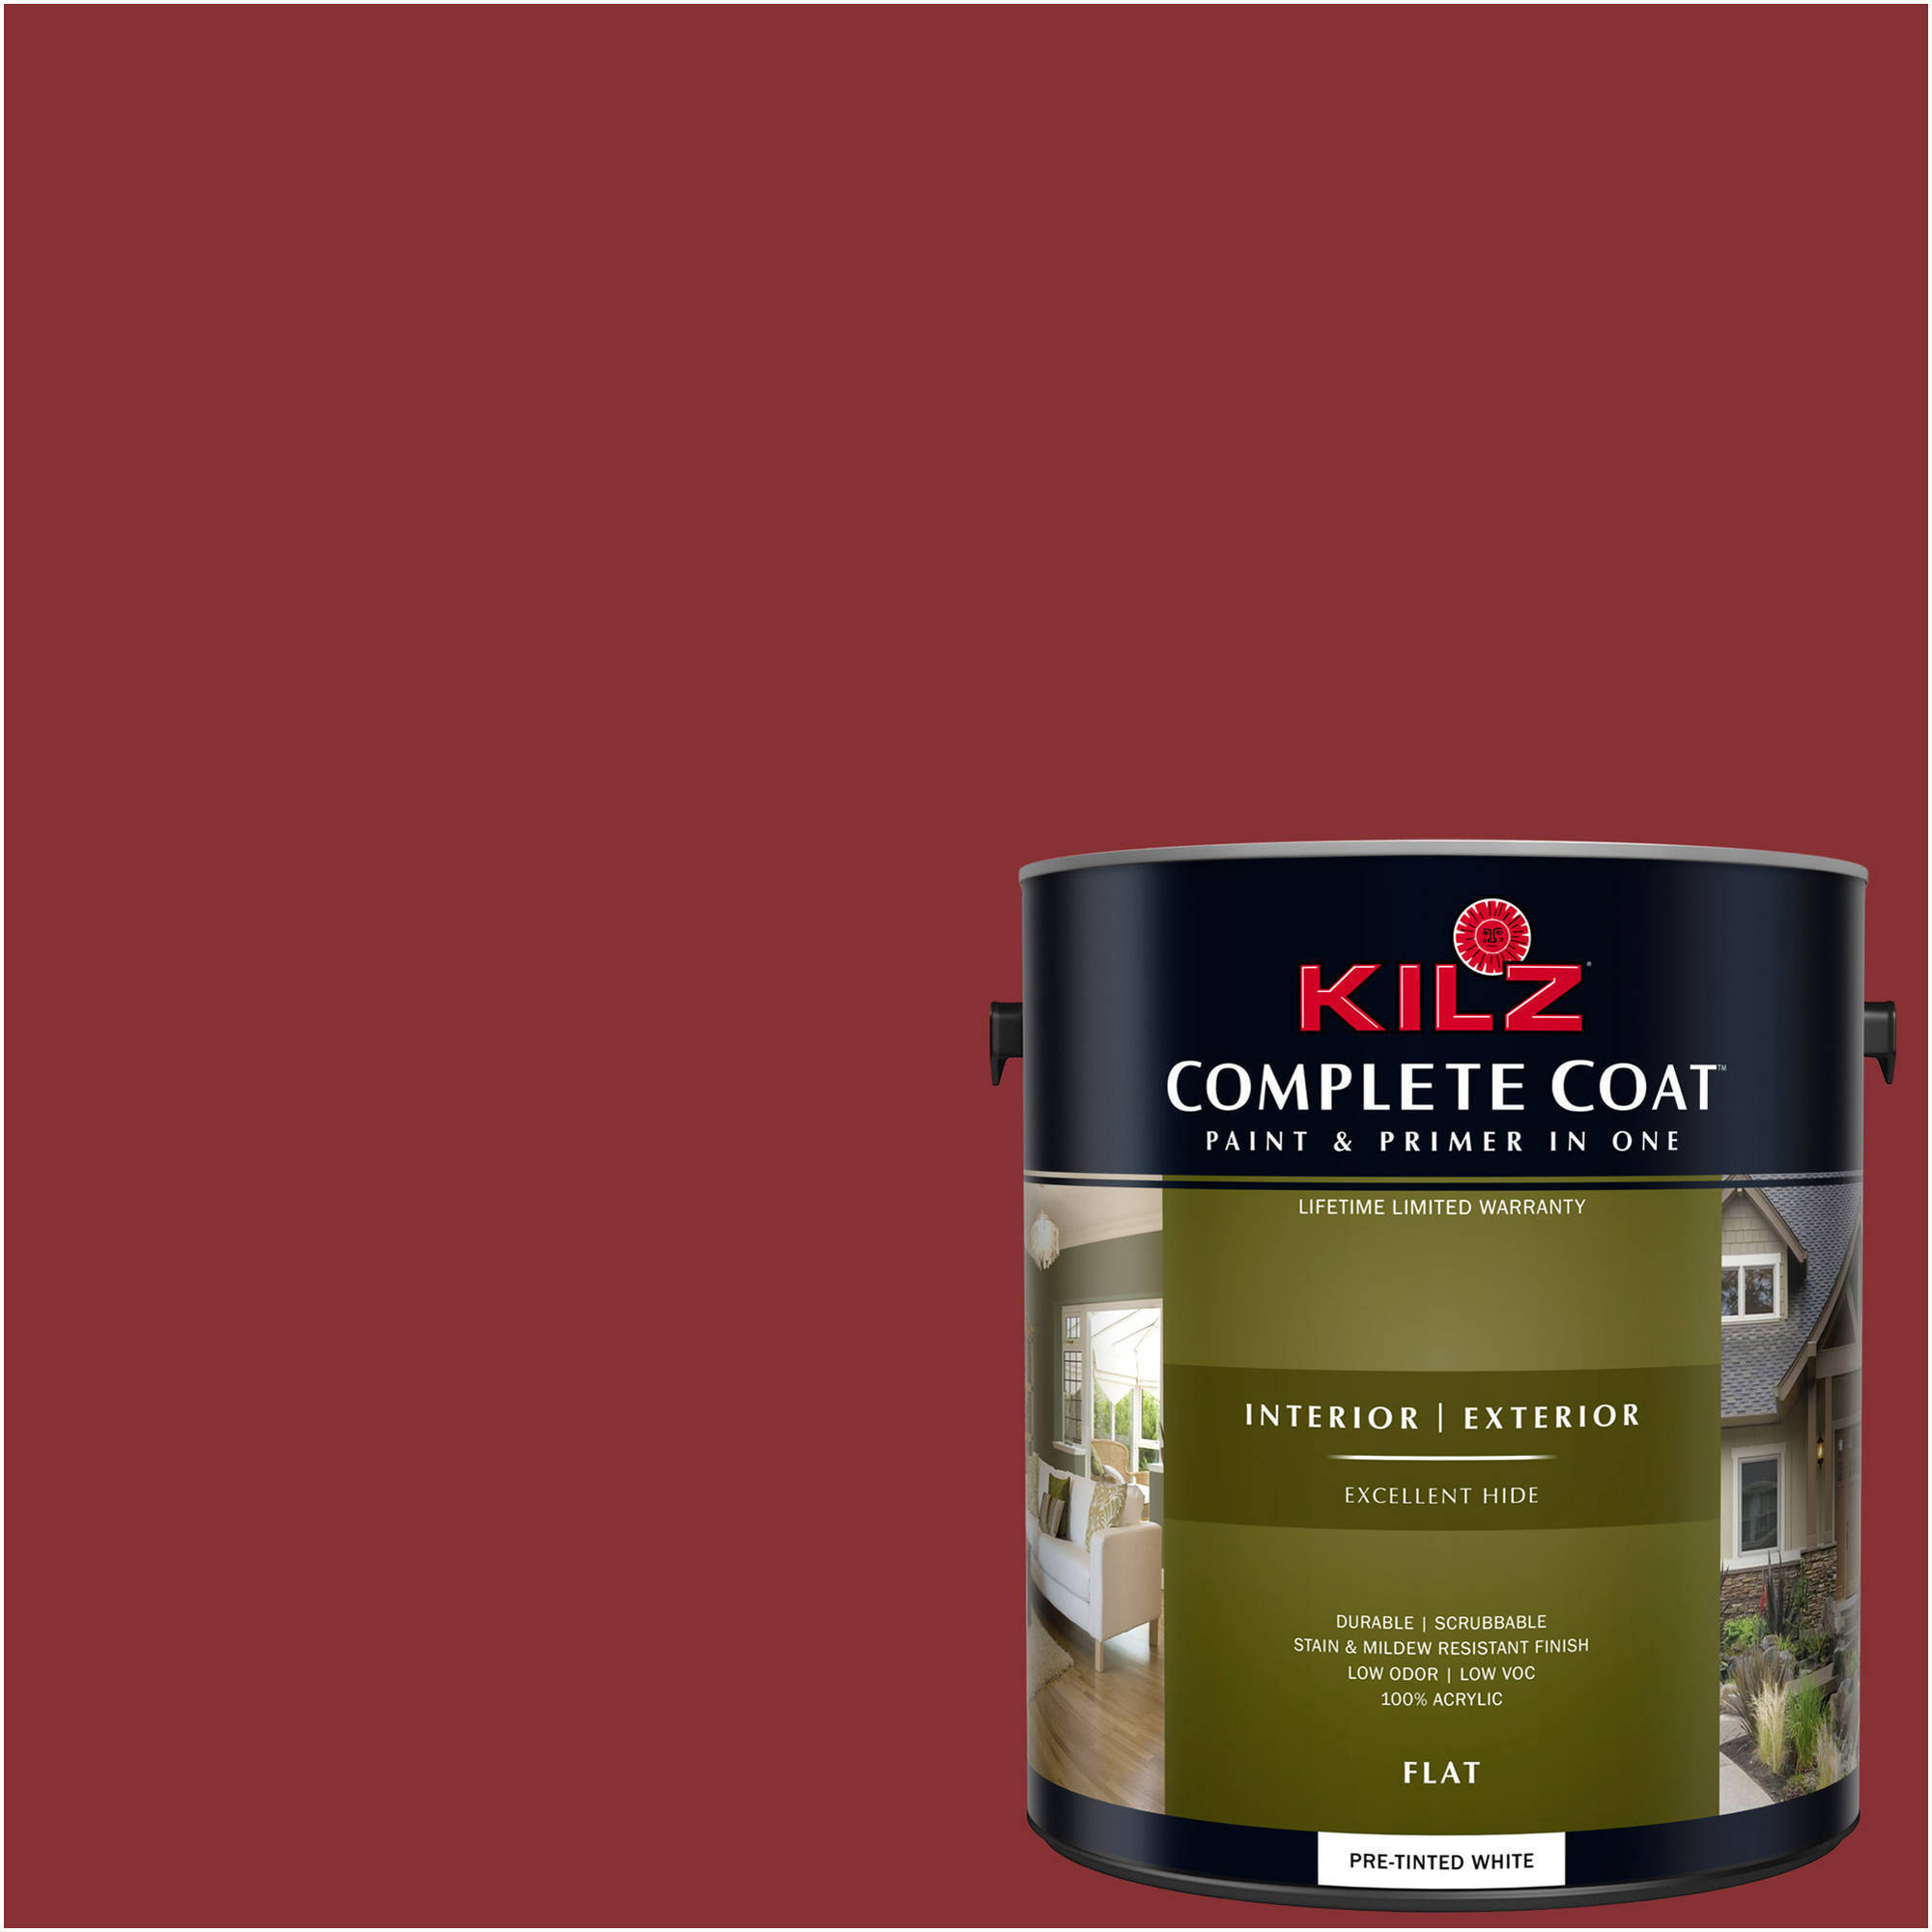 KILZ COMPLETE COAT Interior/Exterior Paint & Primer in One #LA130-02 Raging Bull